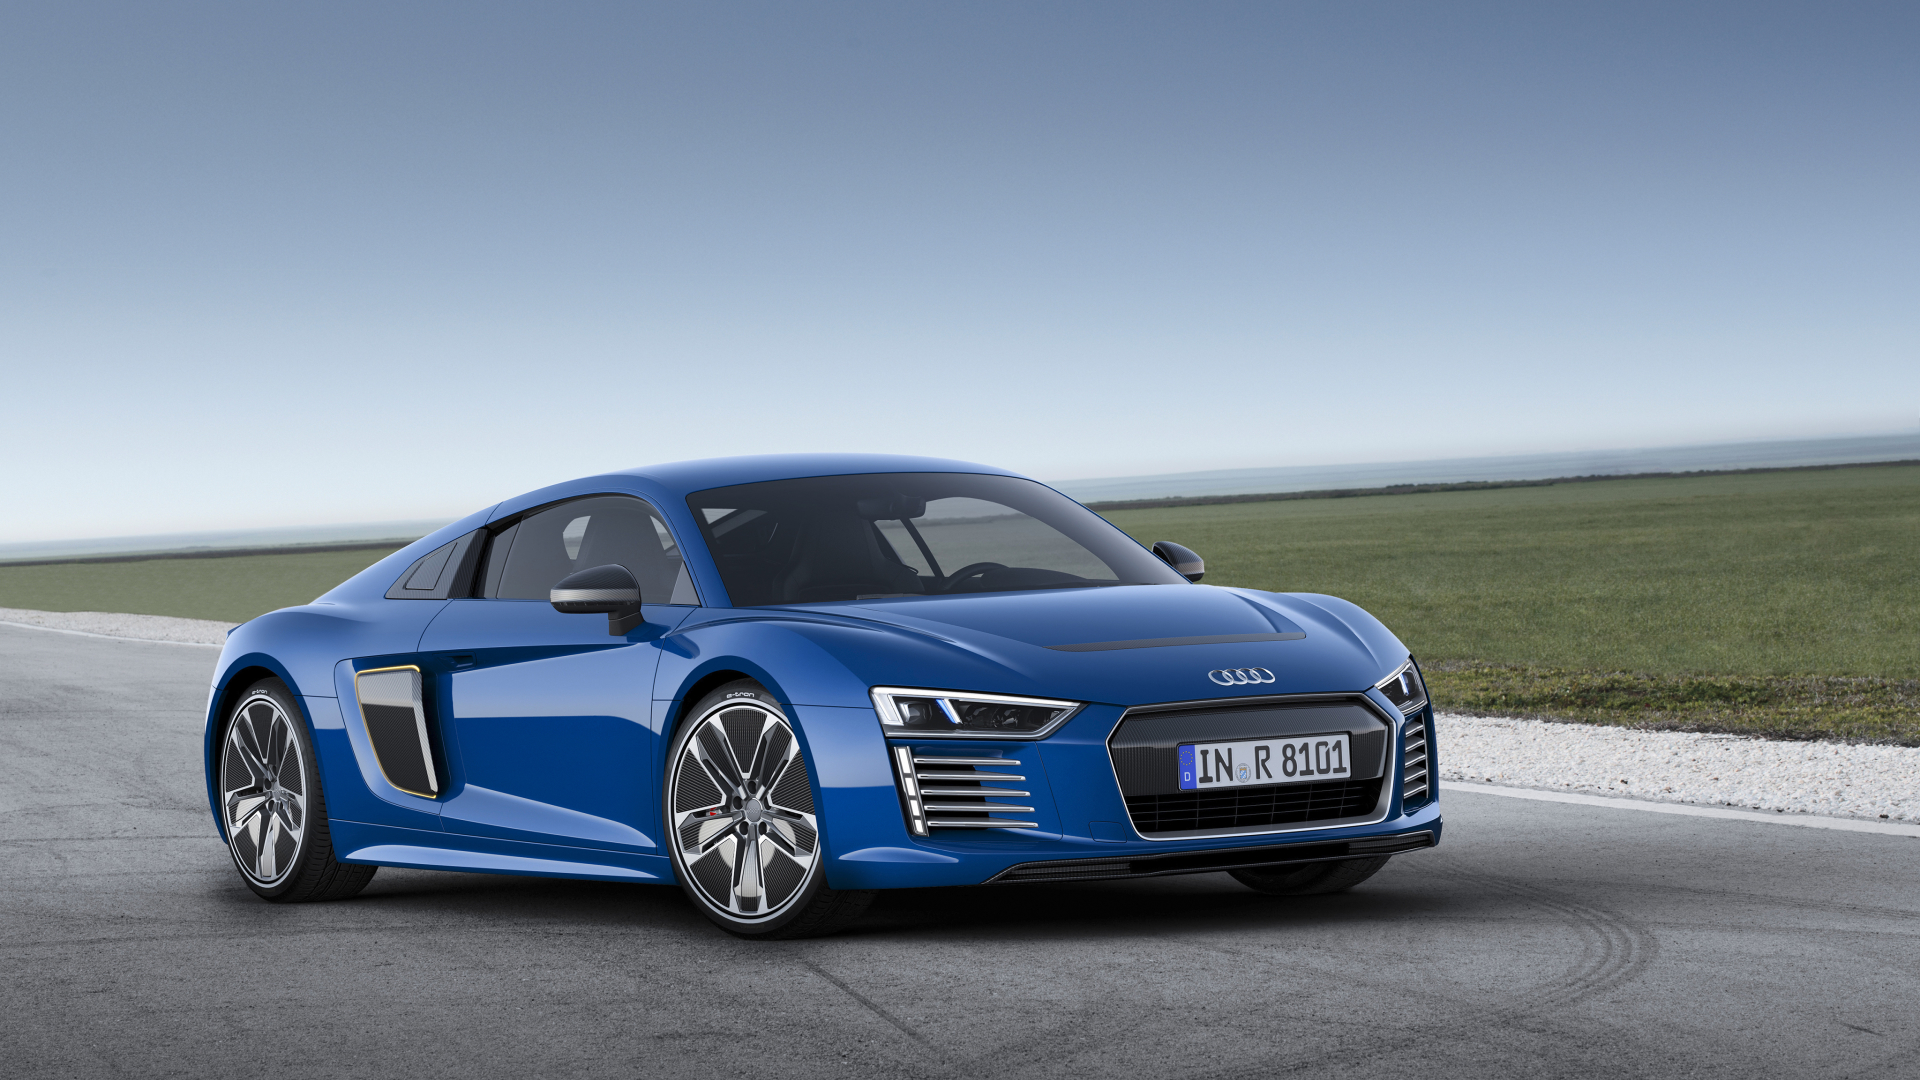 1920x1080 Audi R8 E Tron 1080p Laptop Full Hd Wallpaper Hd Cars 4k Wallpapers Images Photos And Background